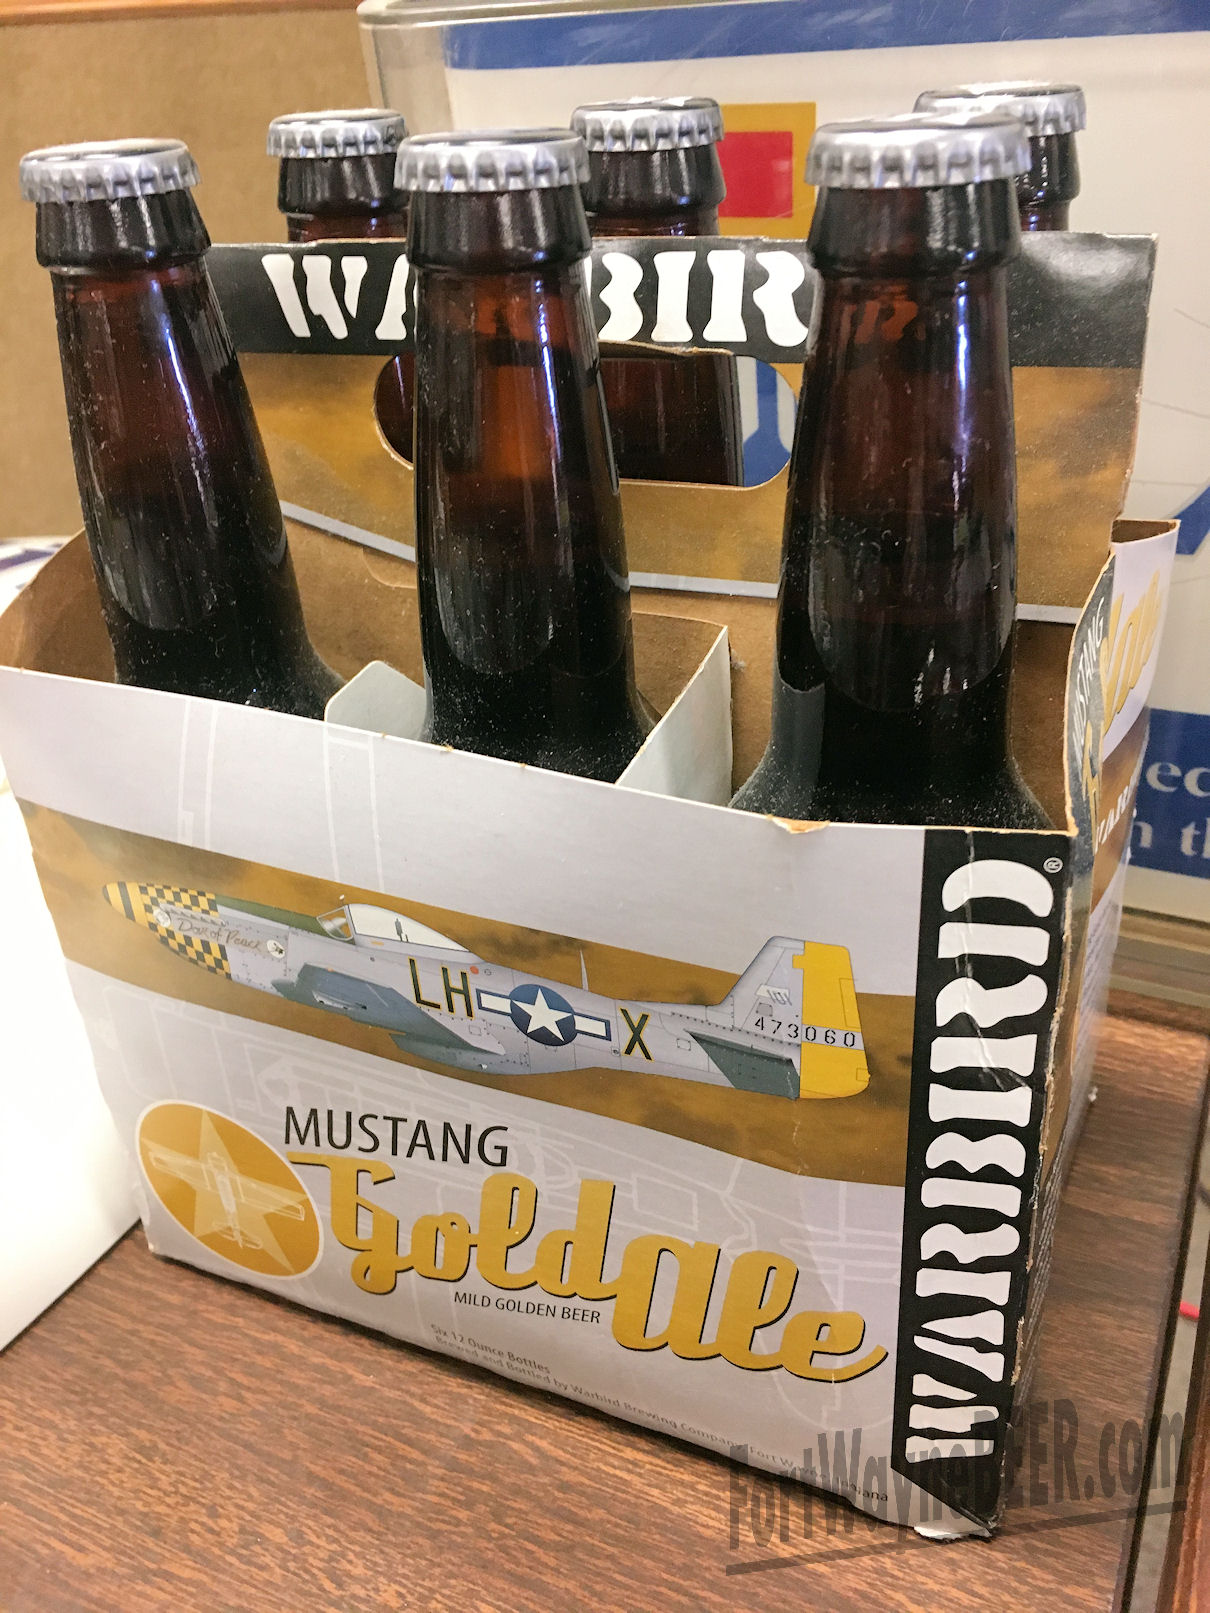 2016 Fort Wayne Brewery Collectibles Show08.JPG